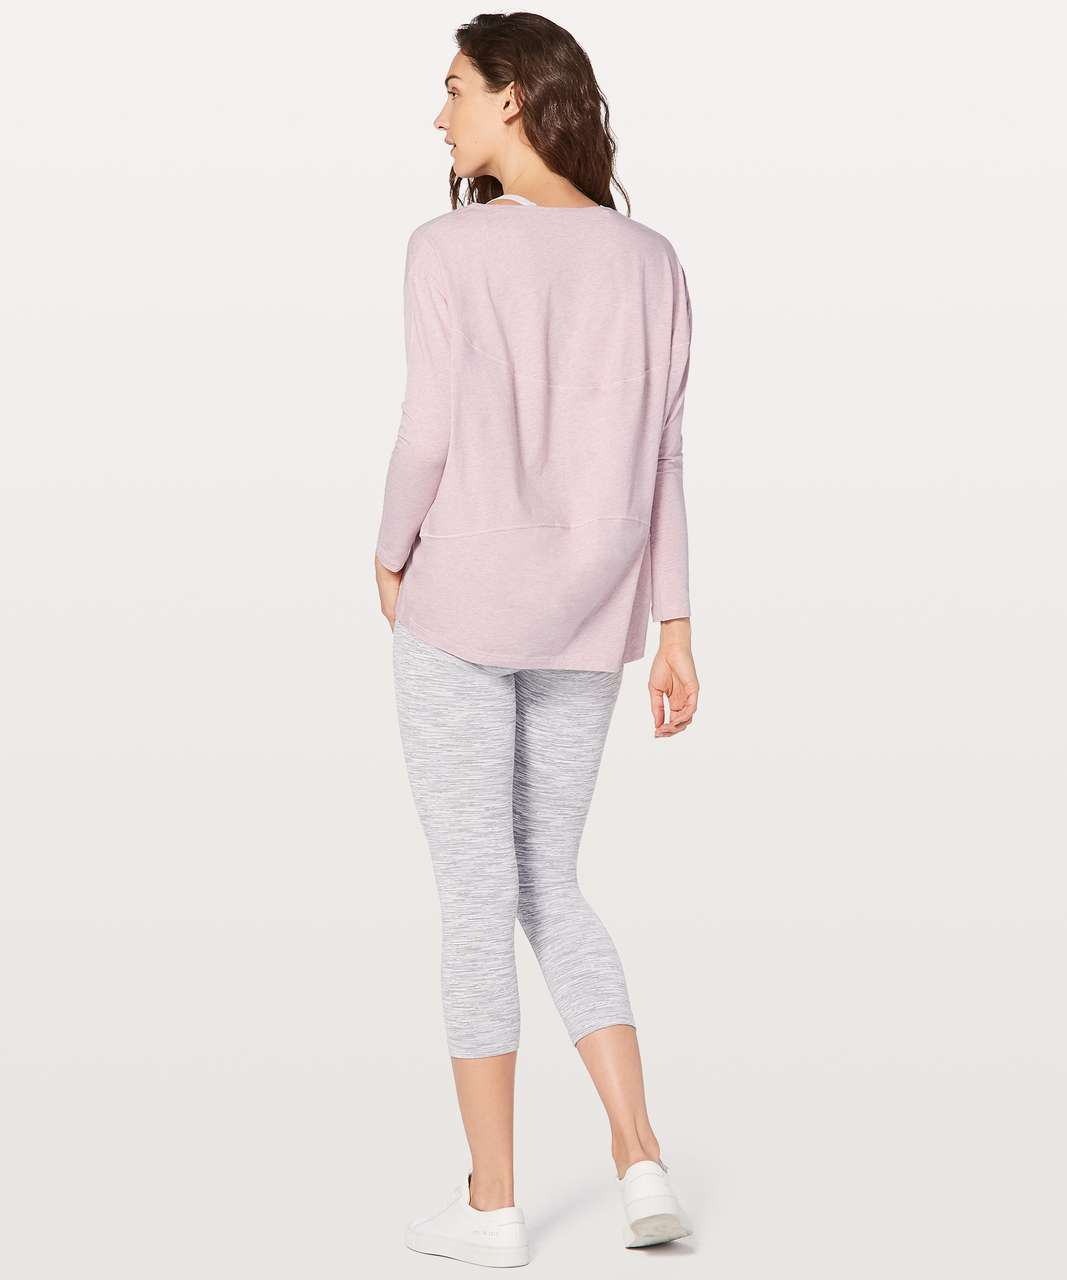 Lululemon Back In Action Long Sleeve V - Heathered Petals